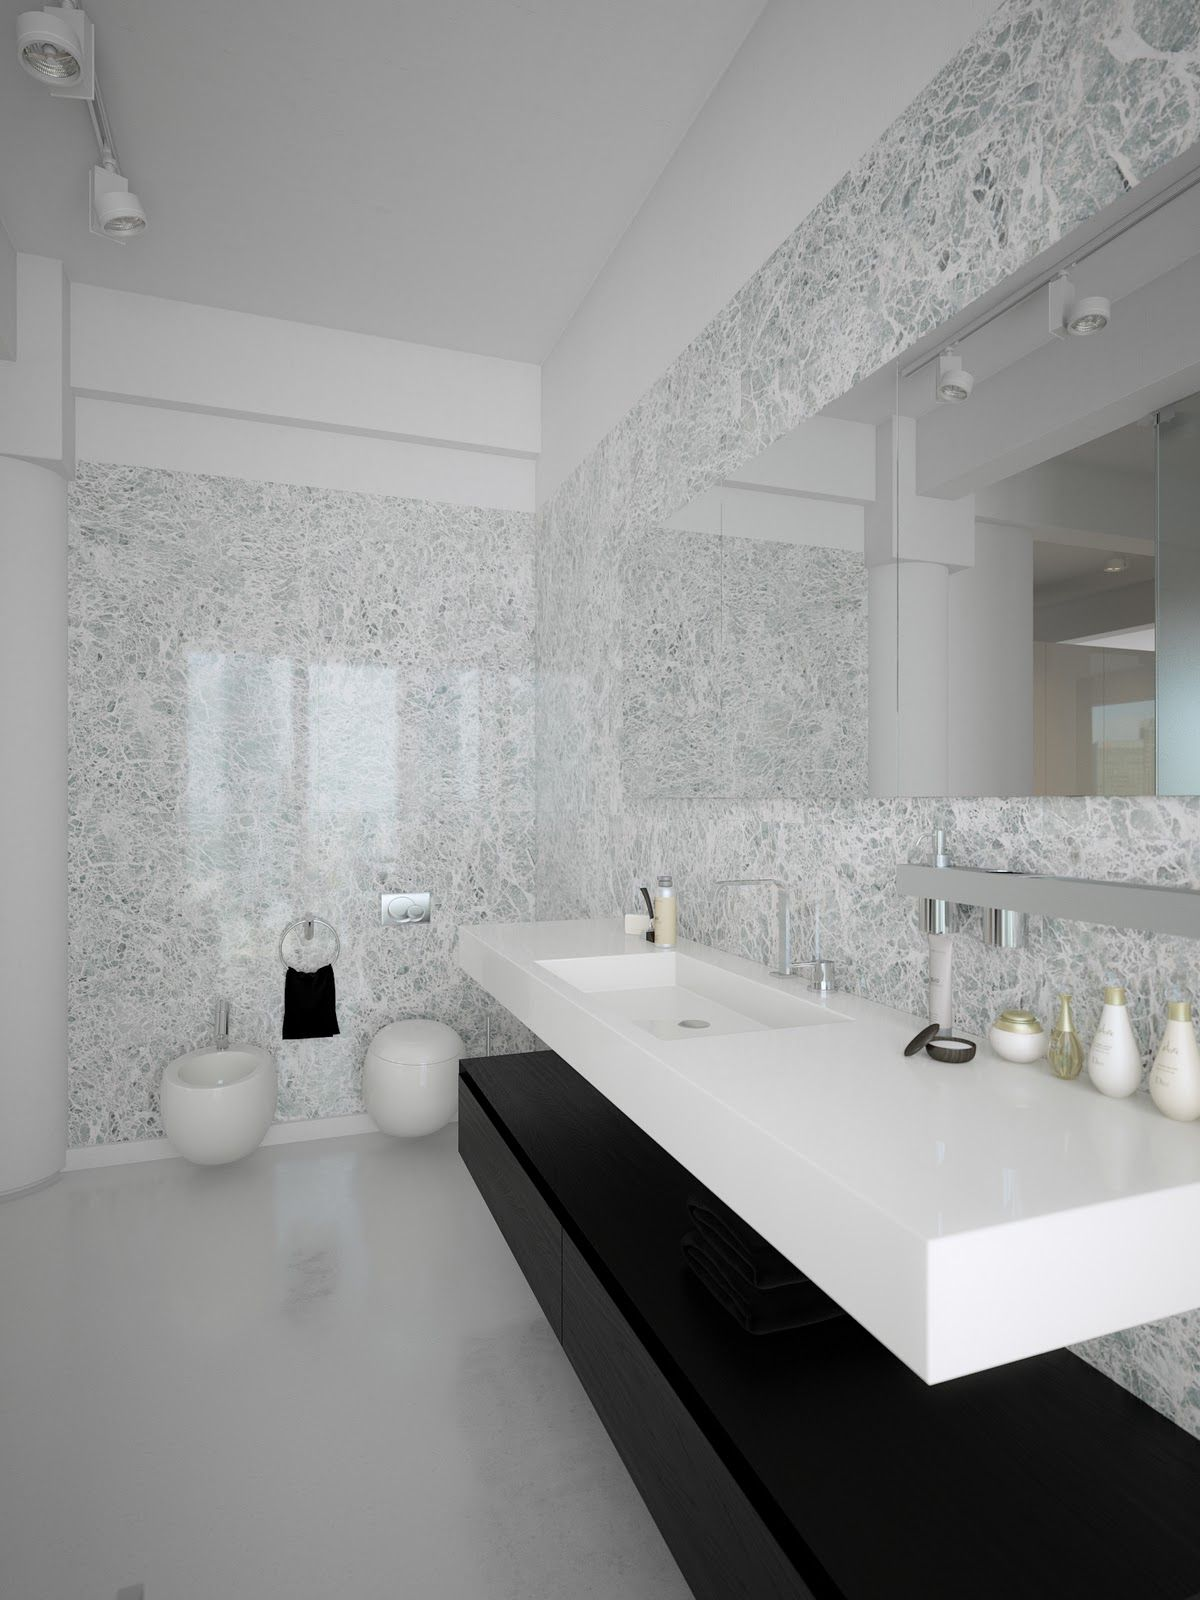 Coolest minimalist modern bathroom design contemporary for Modern chic bathroom designs